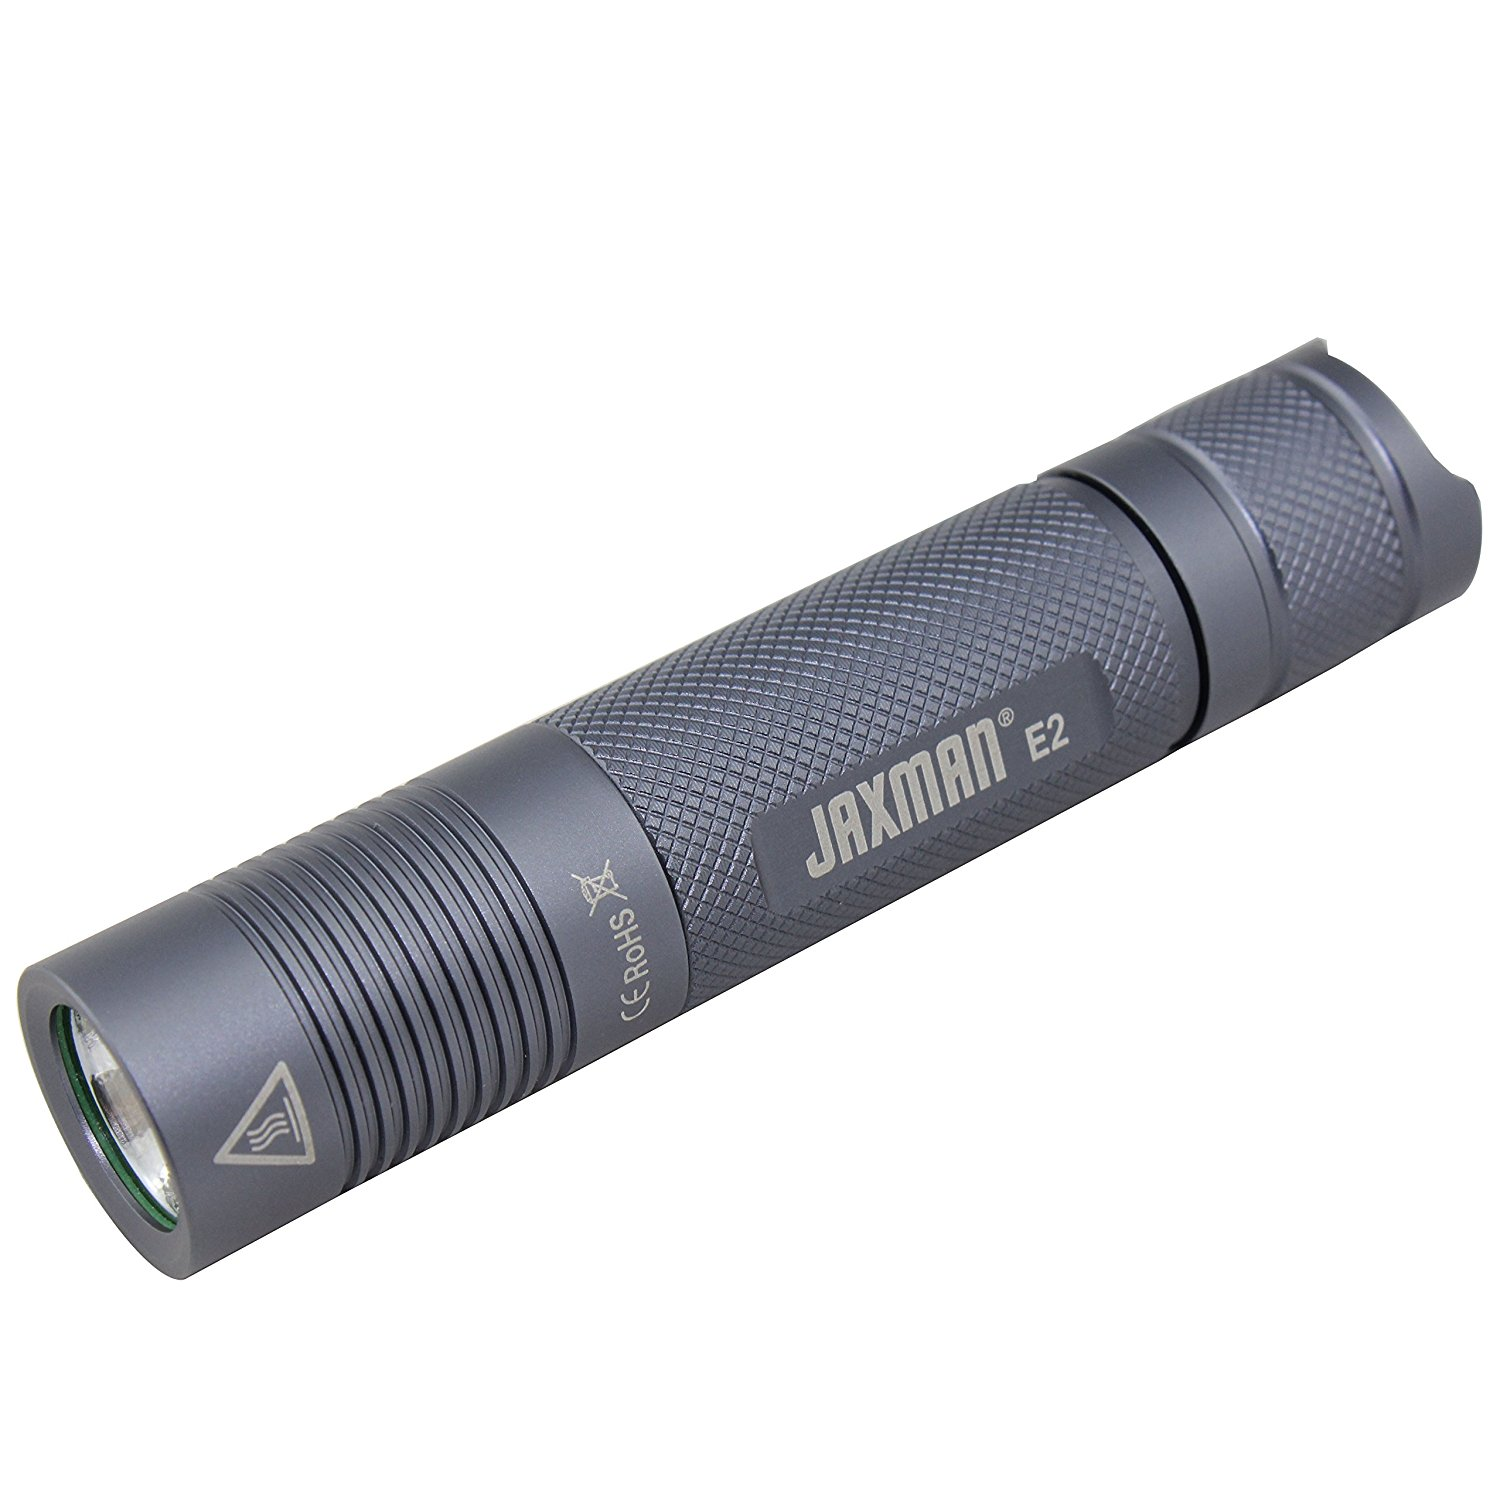 JAXMAN E2 18650 EDC LED flashlight Pocket-Sized LED Torch, Super Bright 580 Lumens,IPX-6, 5 Modes for Indoors and Outdoors( without battery) (XML2 Cool White/Color Temperature 6000-6500k)